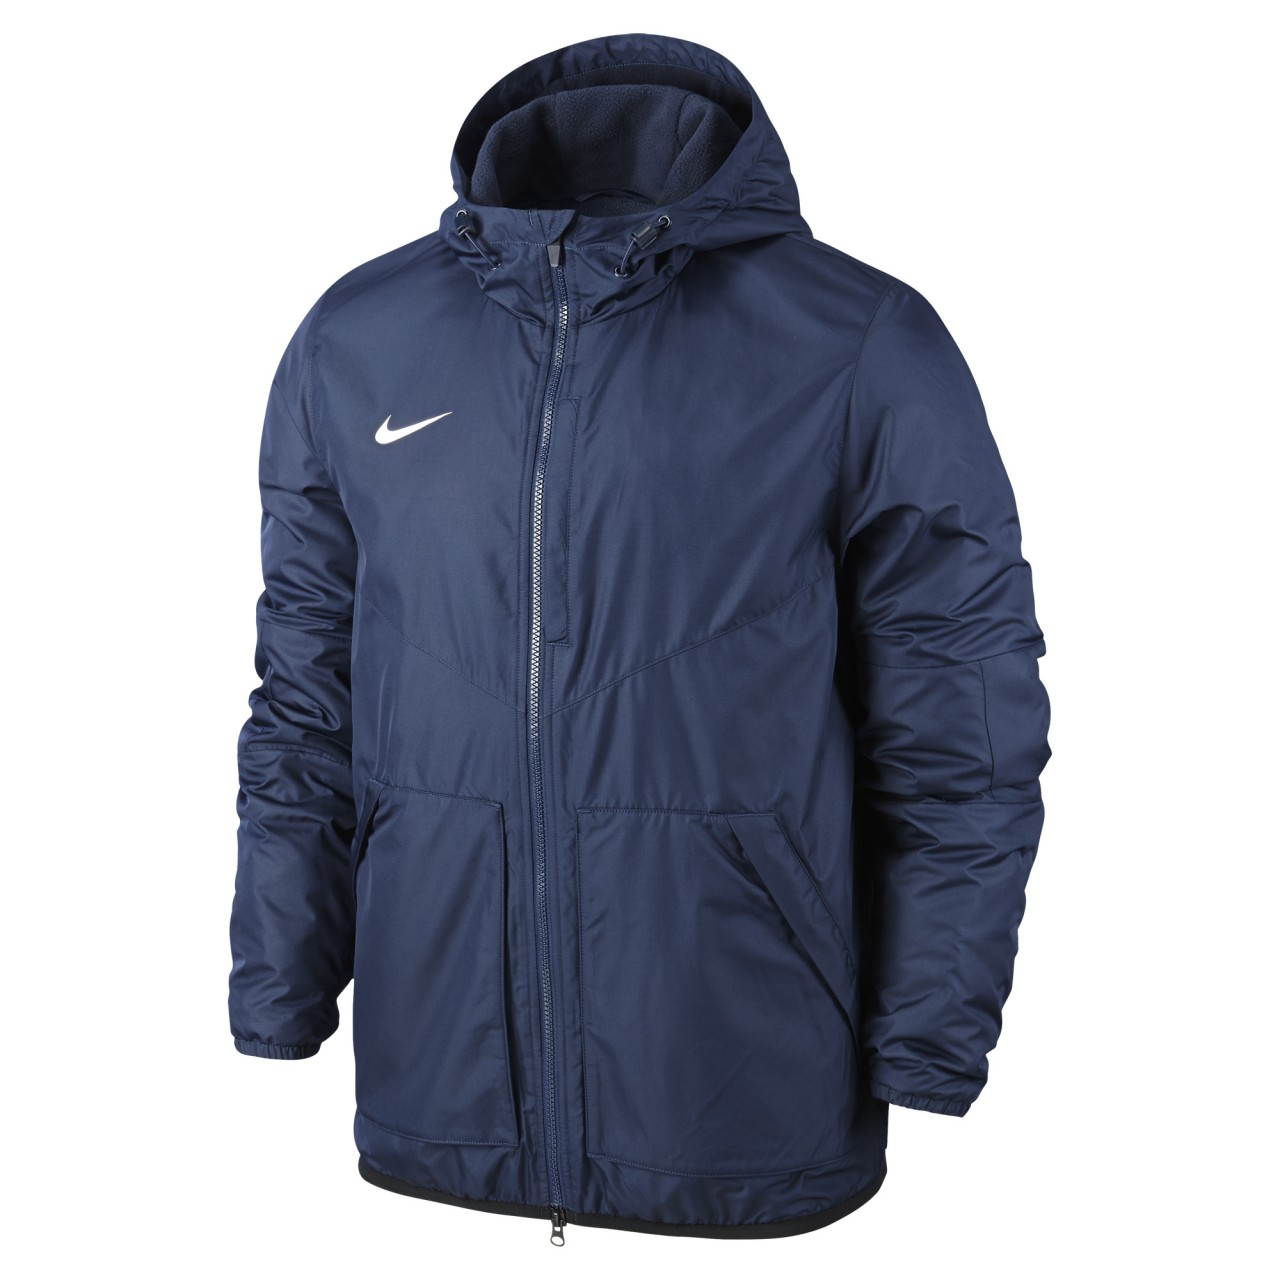 Kids Nike Football Jacket